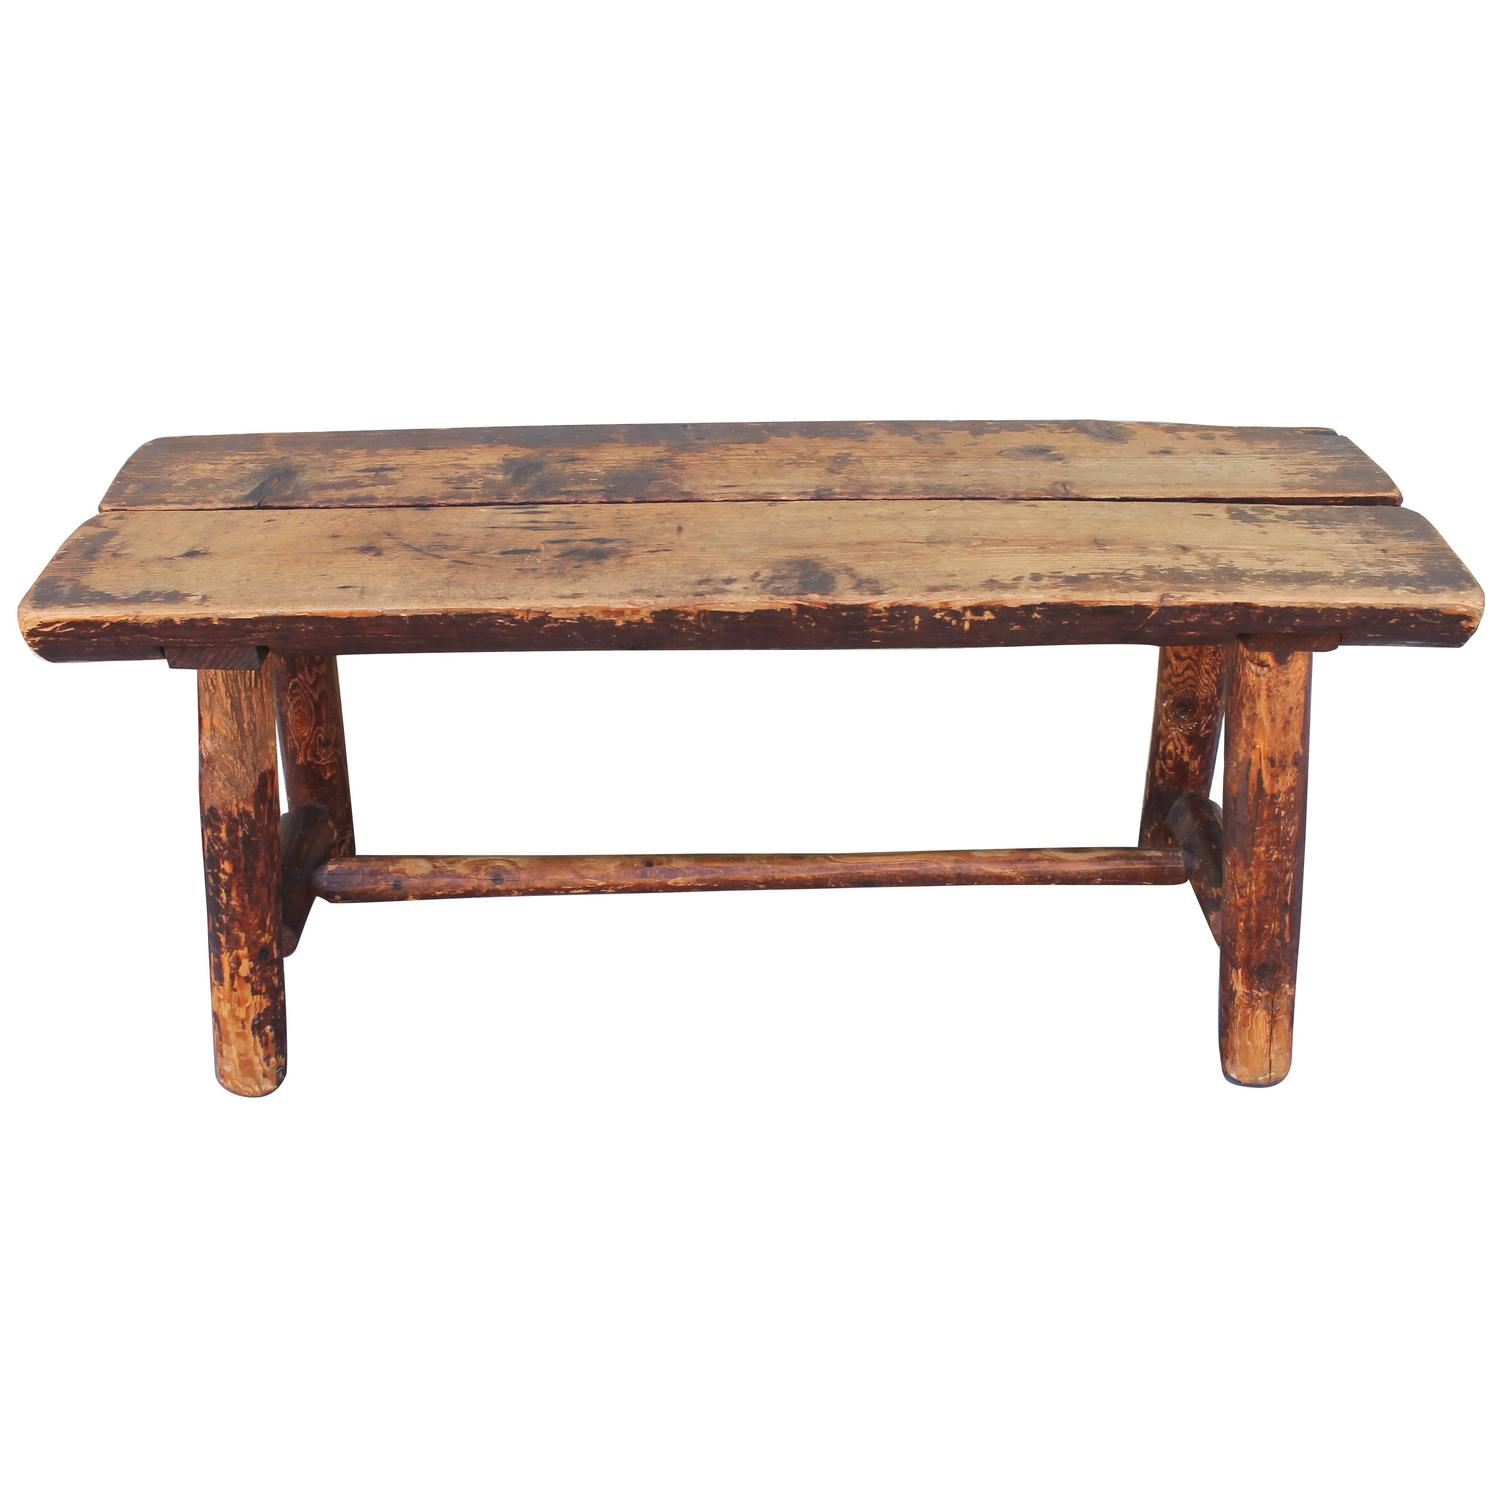 Fantastic Split Log Pine And Hickory Bench At 1stdibs. Full resolution‎  file, nominally Width 1500 Height 1500 pixels, file with #965835.